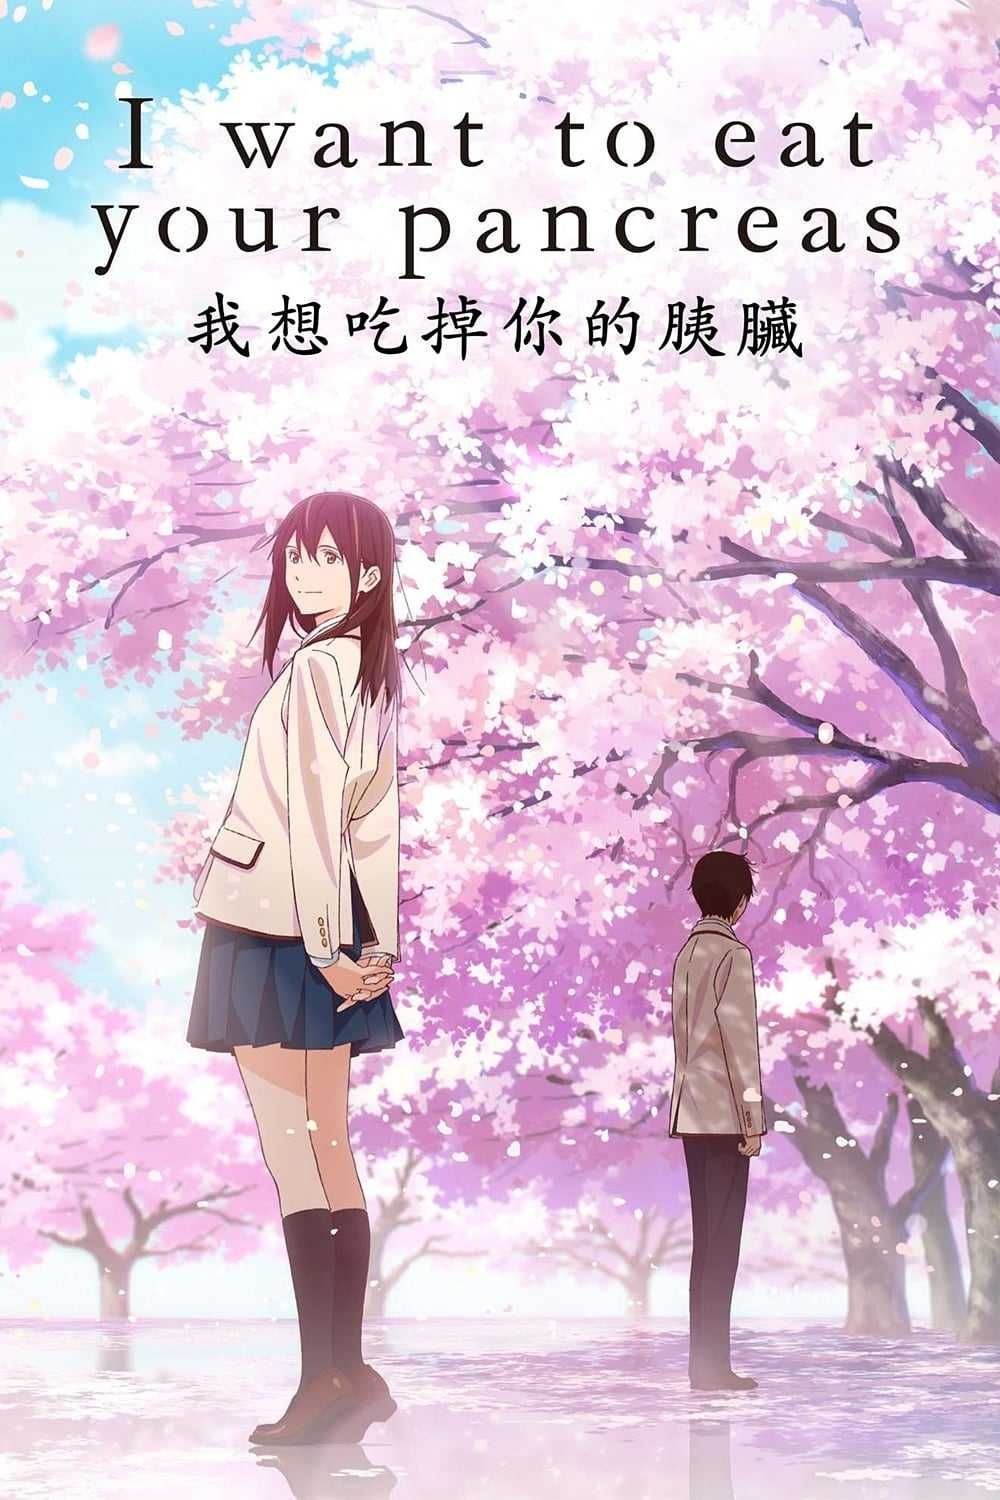 Download i want to eat your pancreas hd wallpapers 1920x1080 download wallpaper for iphone, android, tablets, desktops and other devices. I want to eat your pancreas 480p 780p or 1080p | Anplay in ...